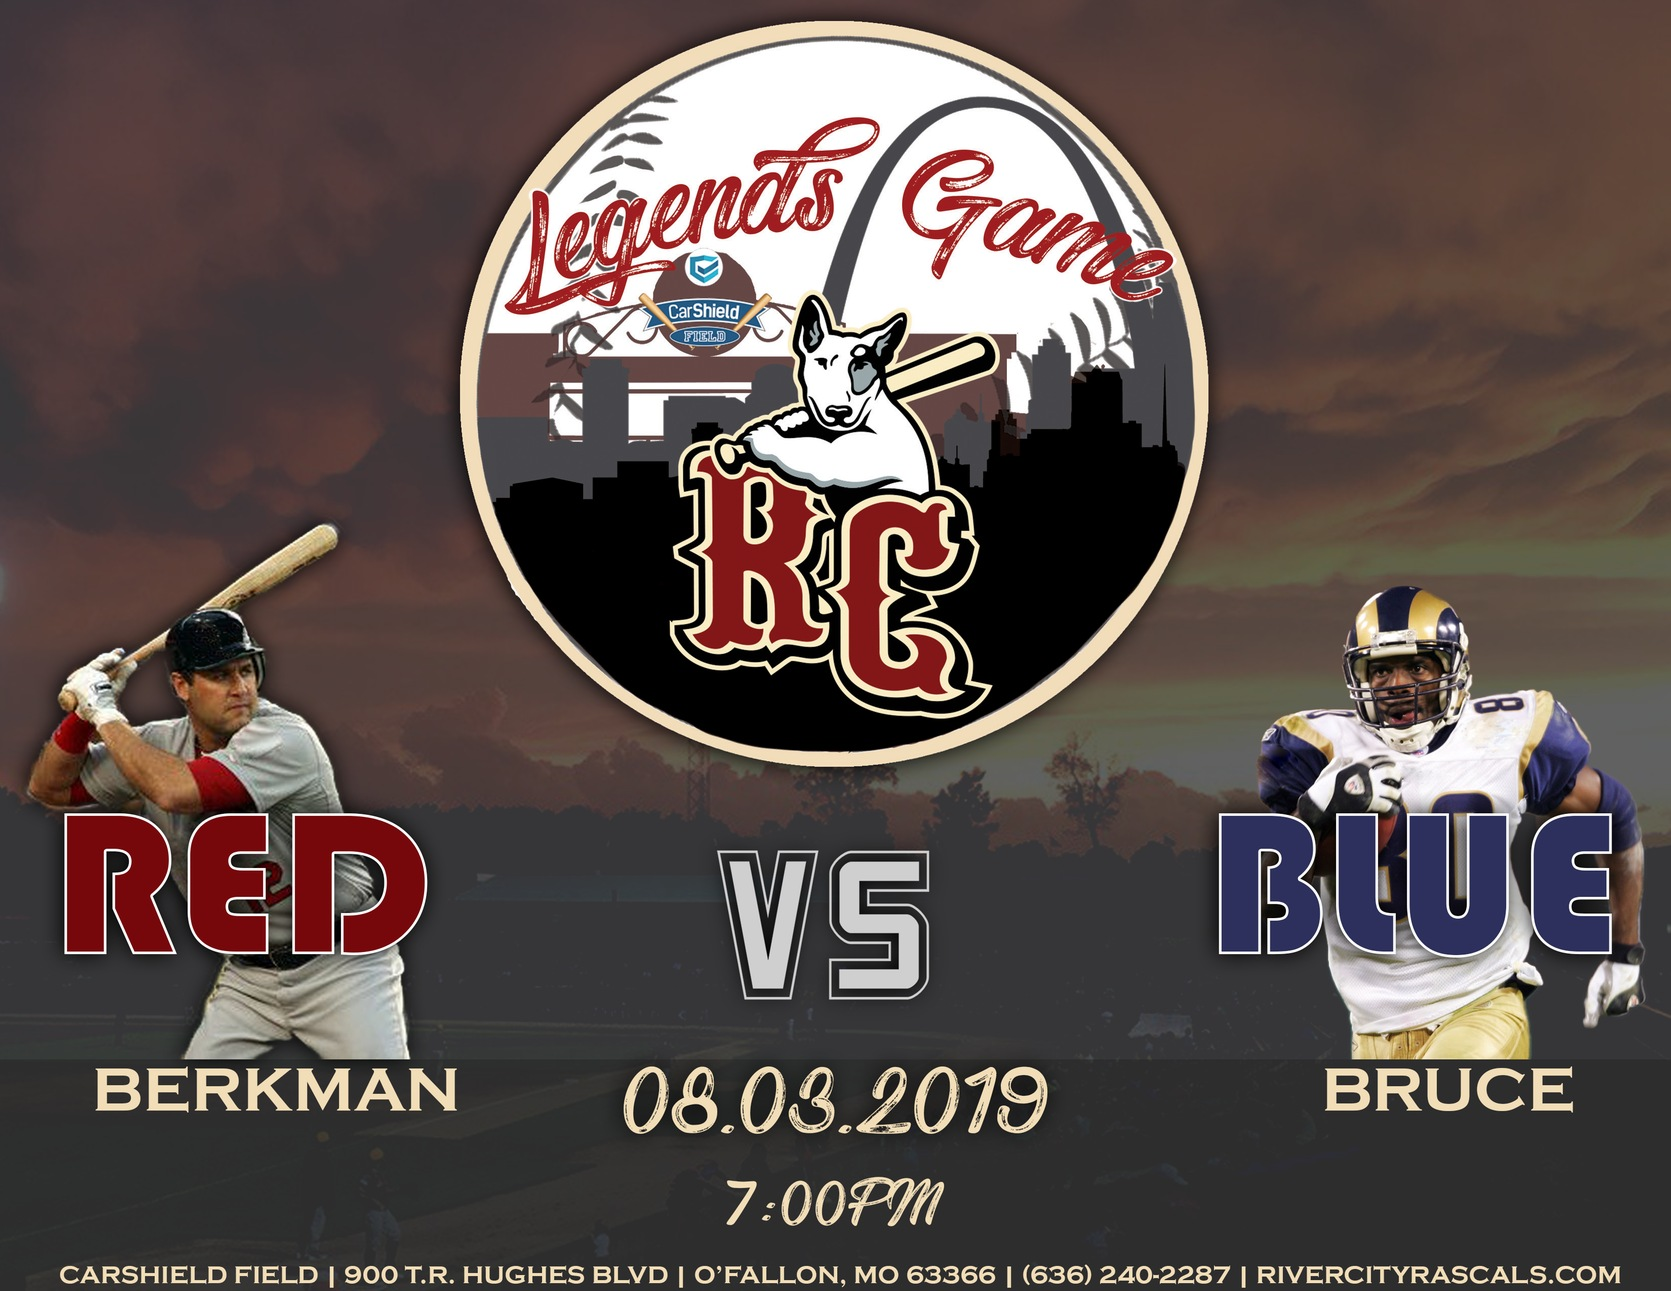 Berkman, Bruce Announced as Legends Game Headliners